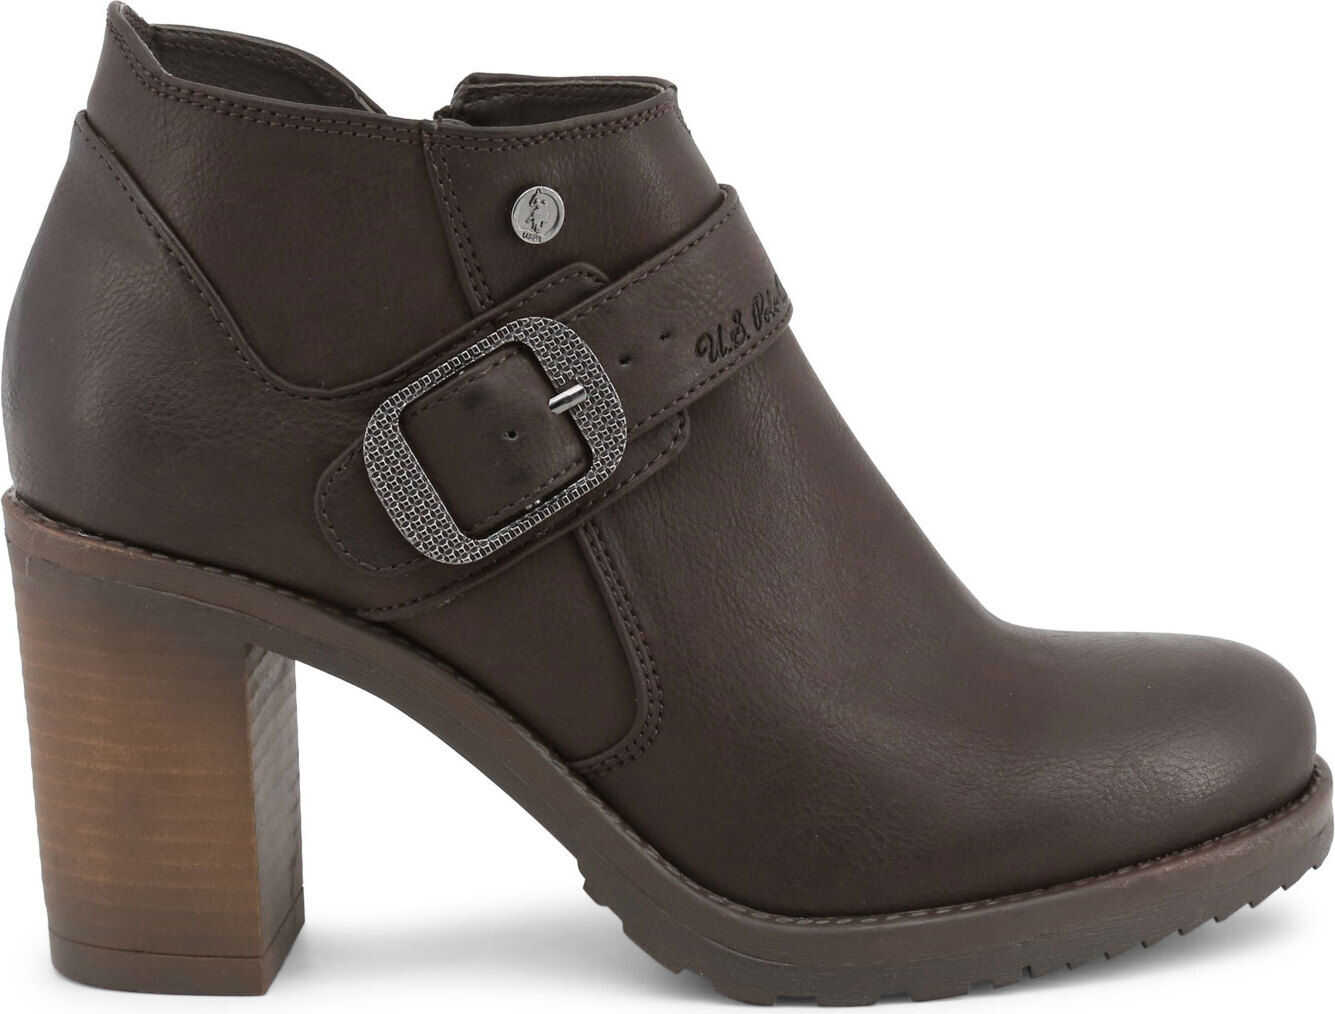 U.S. POLO ASSN. Sadie4156W8 Brown